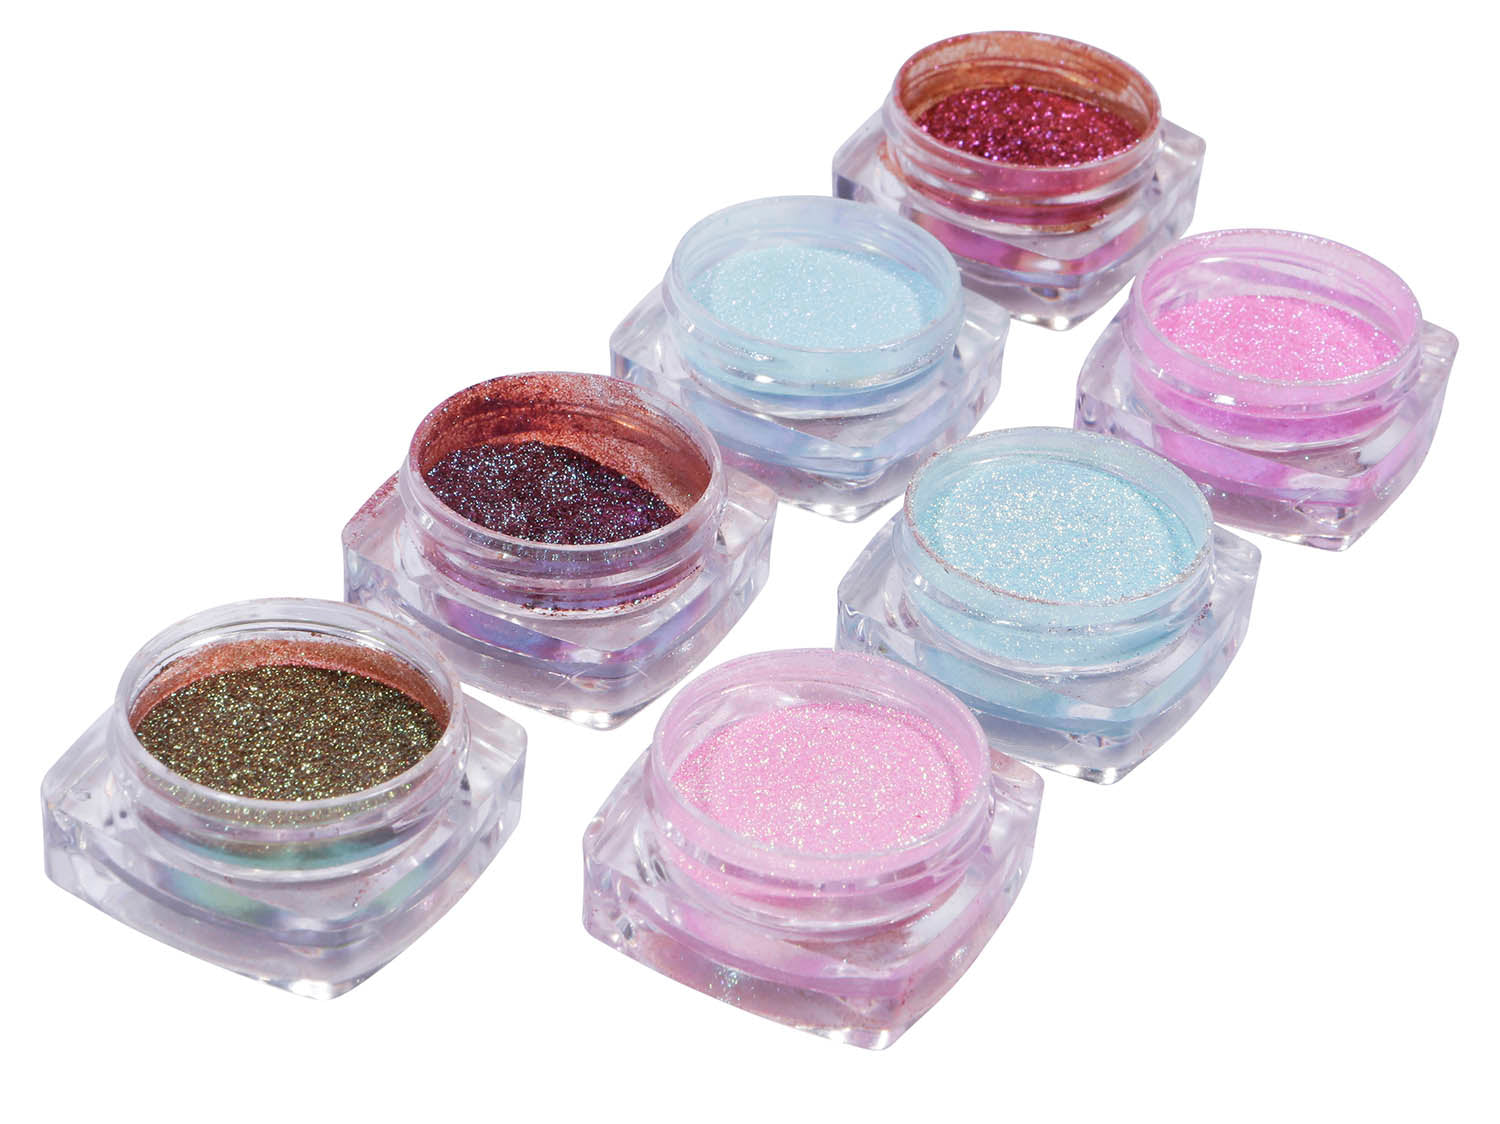 Duochrome Eye Shadows